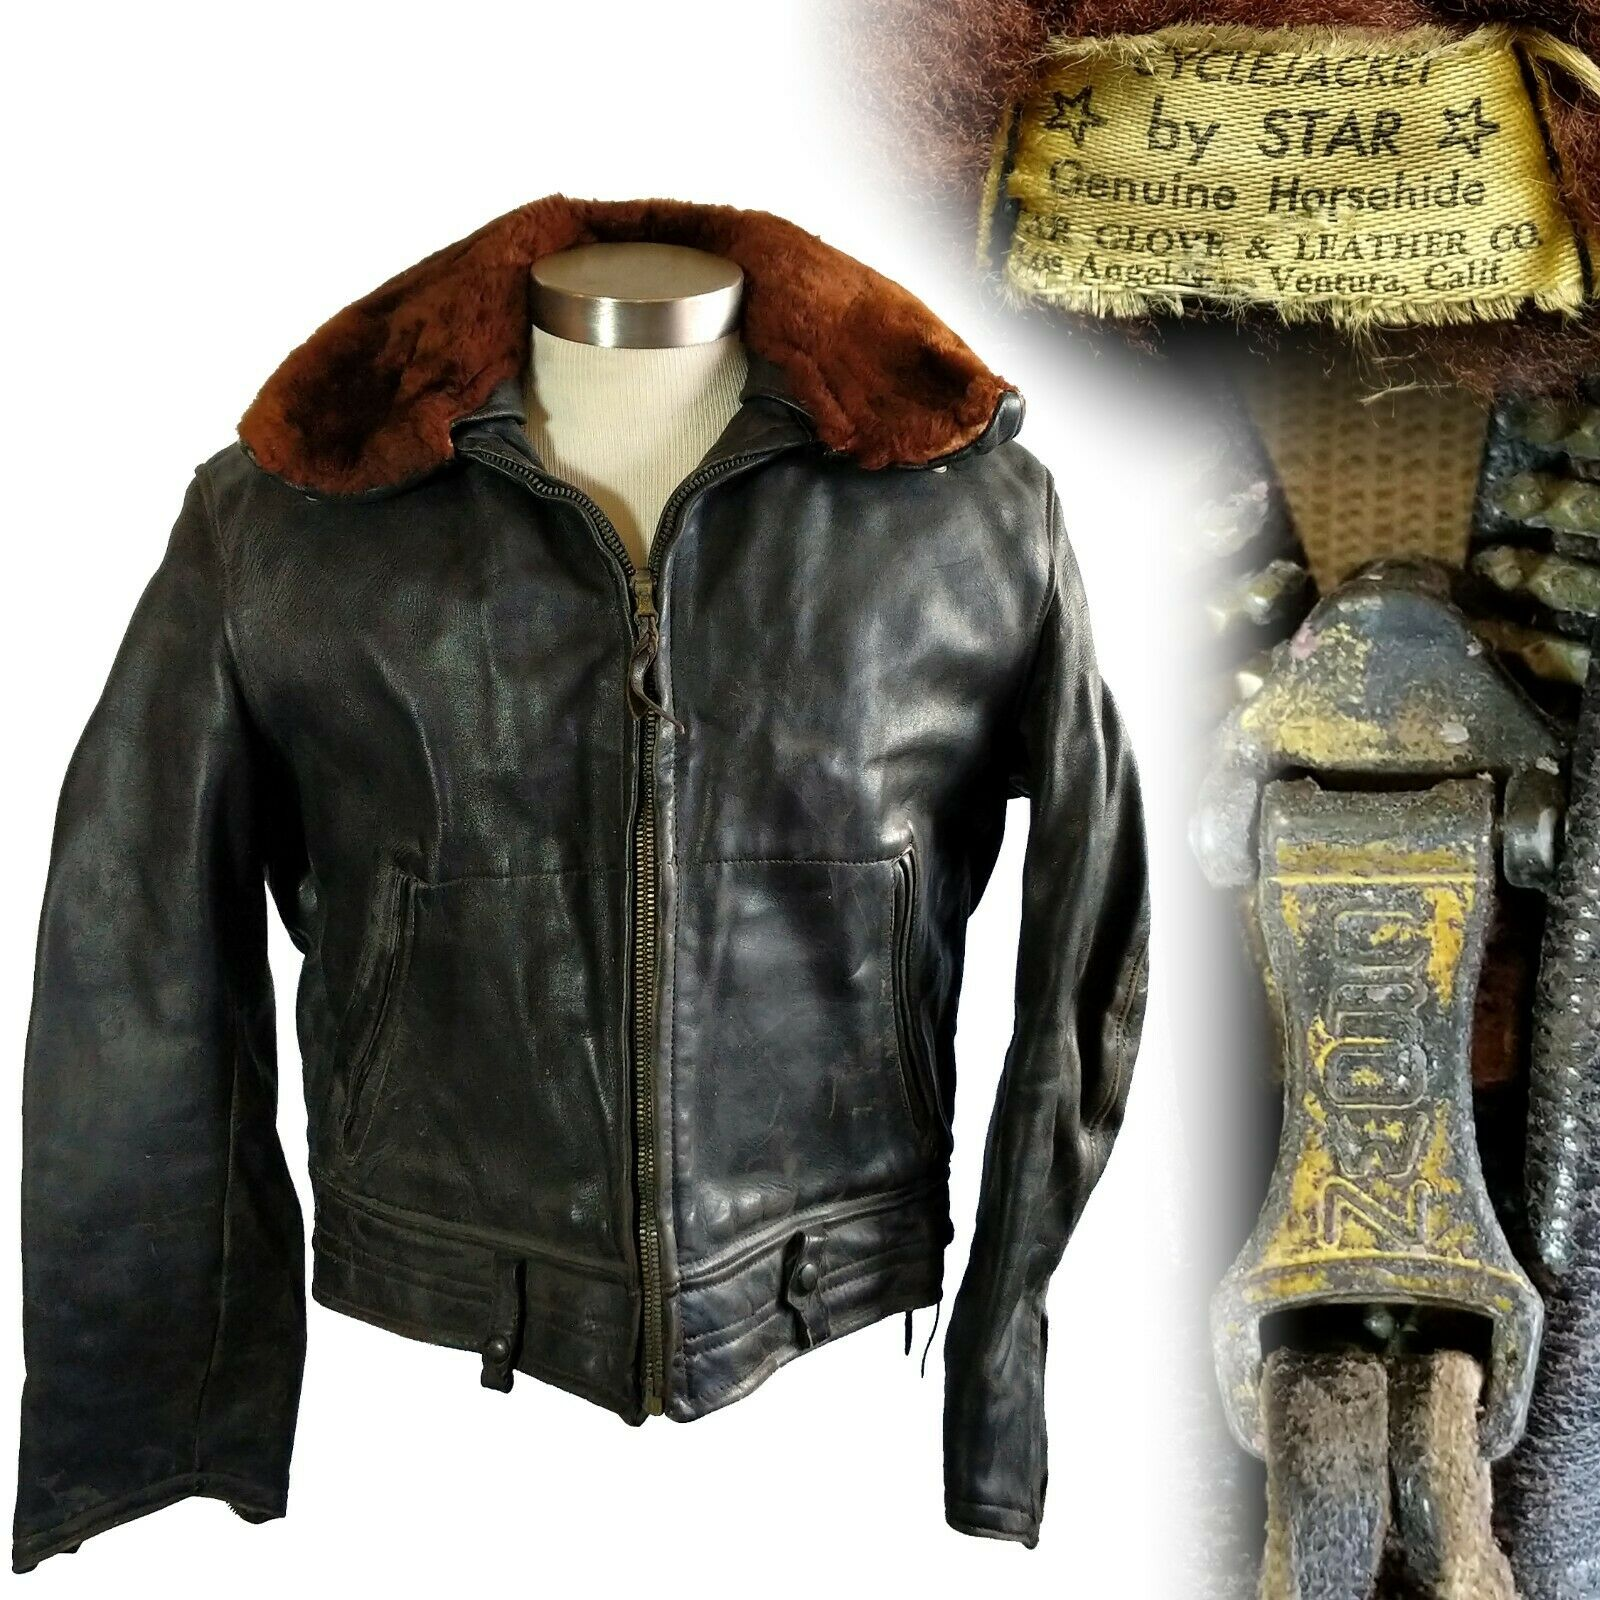 Vintage 1940s Star Glove Horsehide Leather Motorcycle Jacket Mouton Collar 46